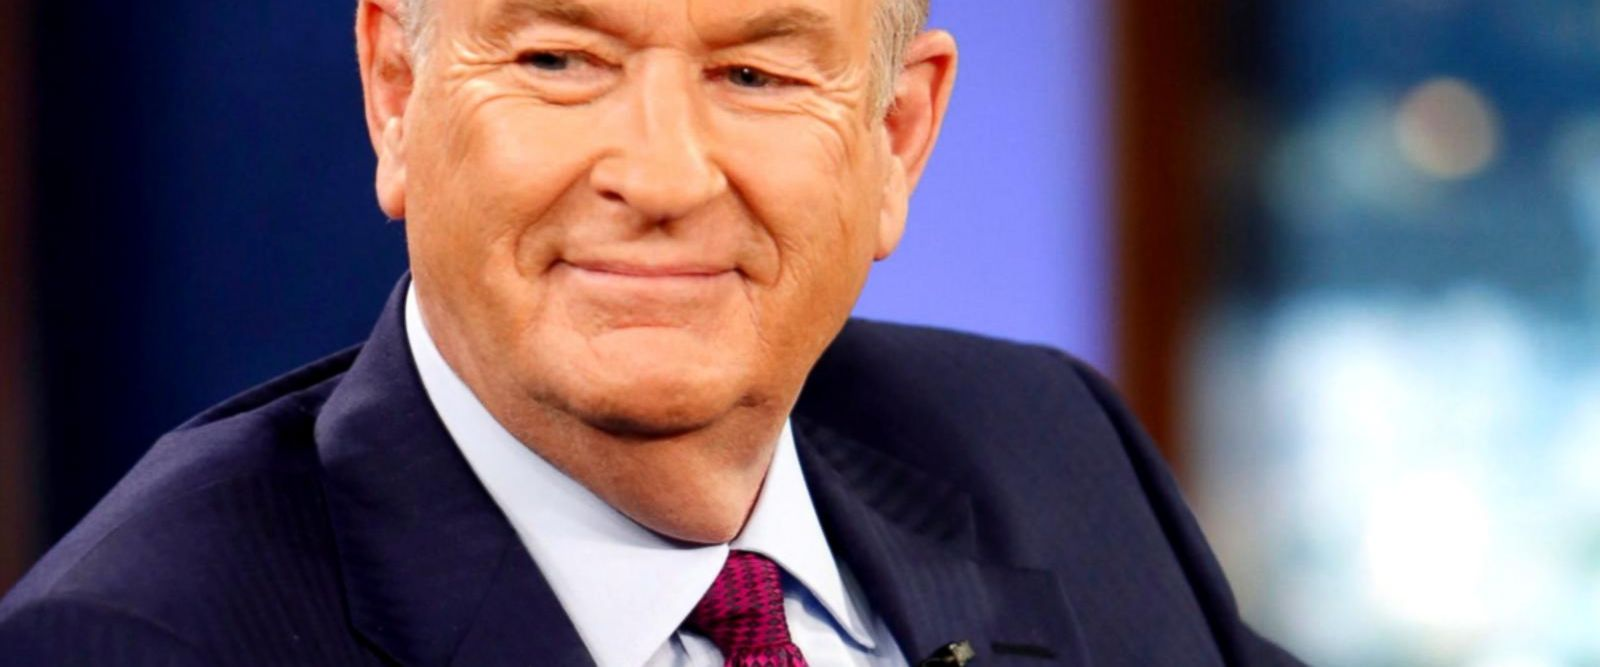 VIDEO: Bill O'Reilly fires back after New York Times report